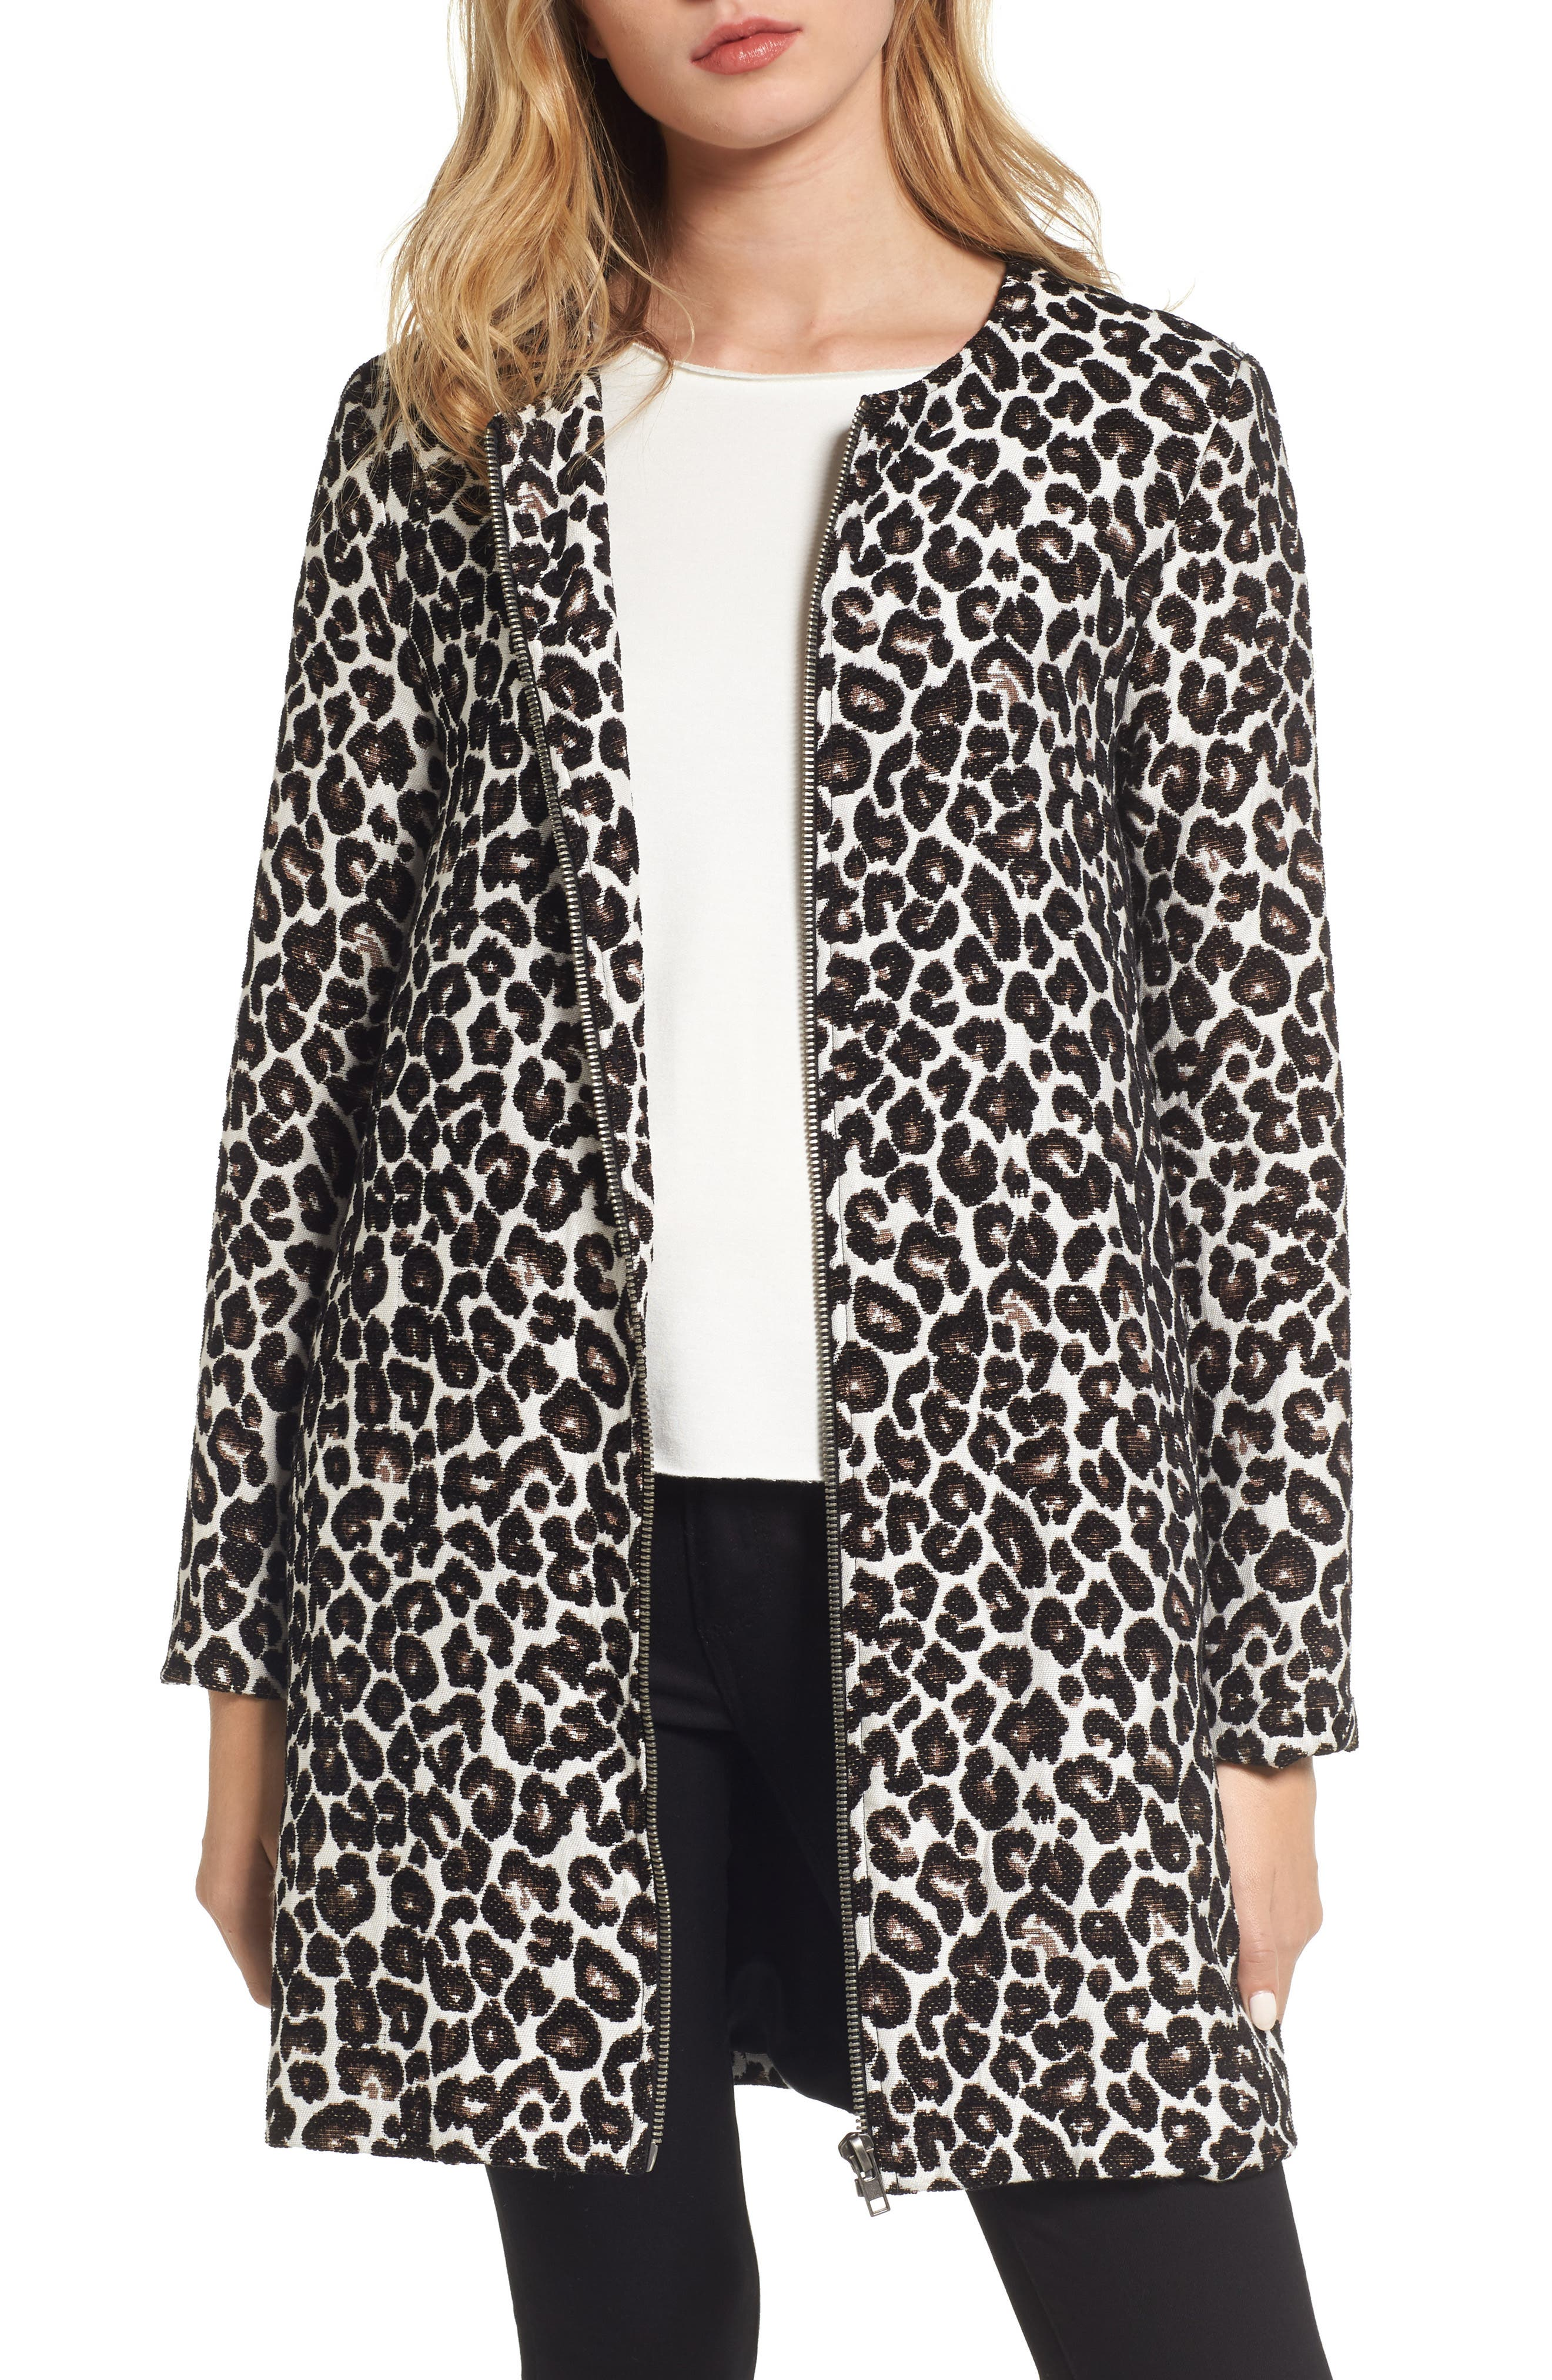 cupcakes and cashmere Adeltia Leopard Print Jacket